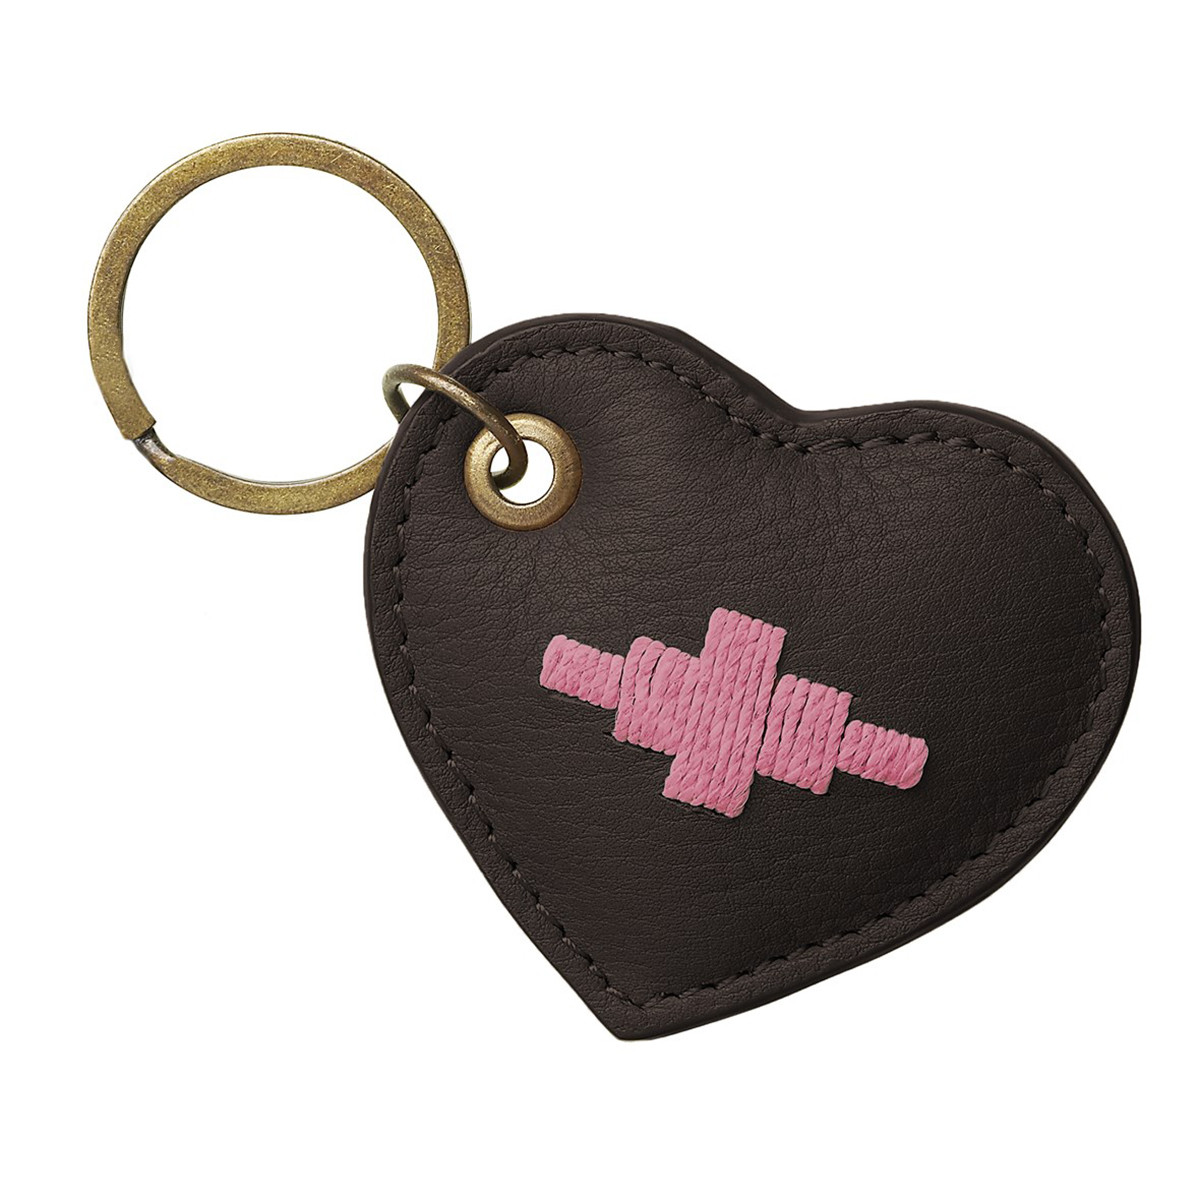 Pampeano Vida Heart Keyring -  Brown Leather with Pink Stitching